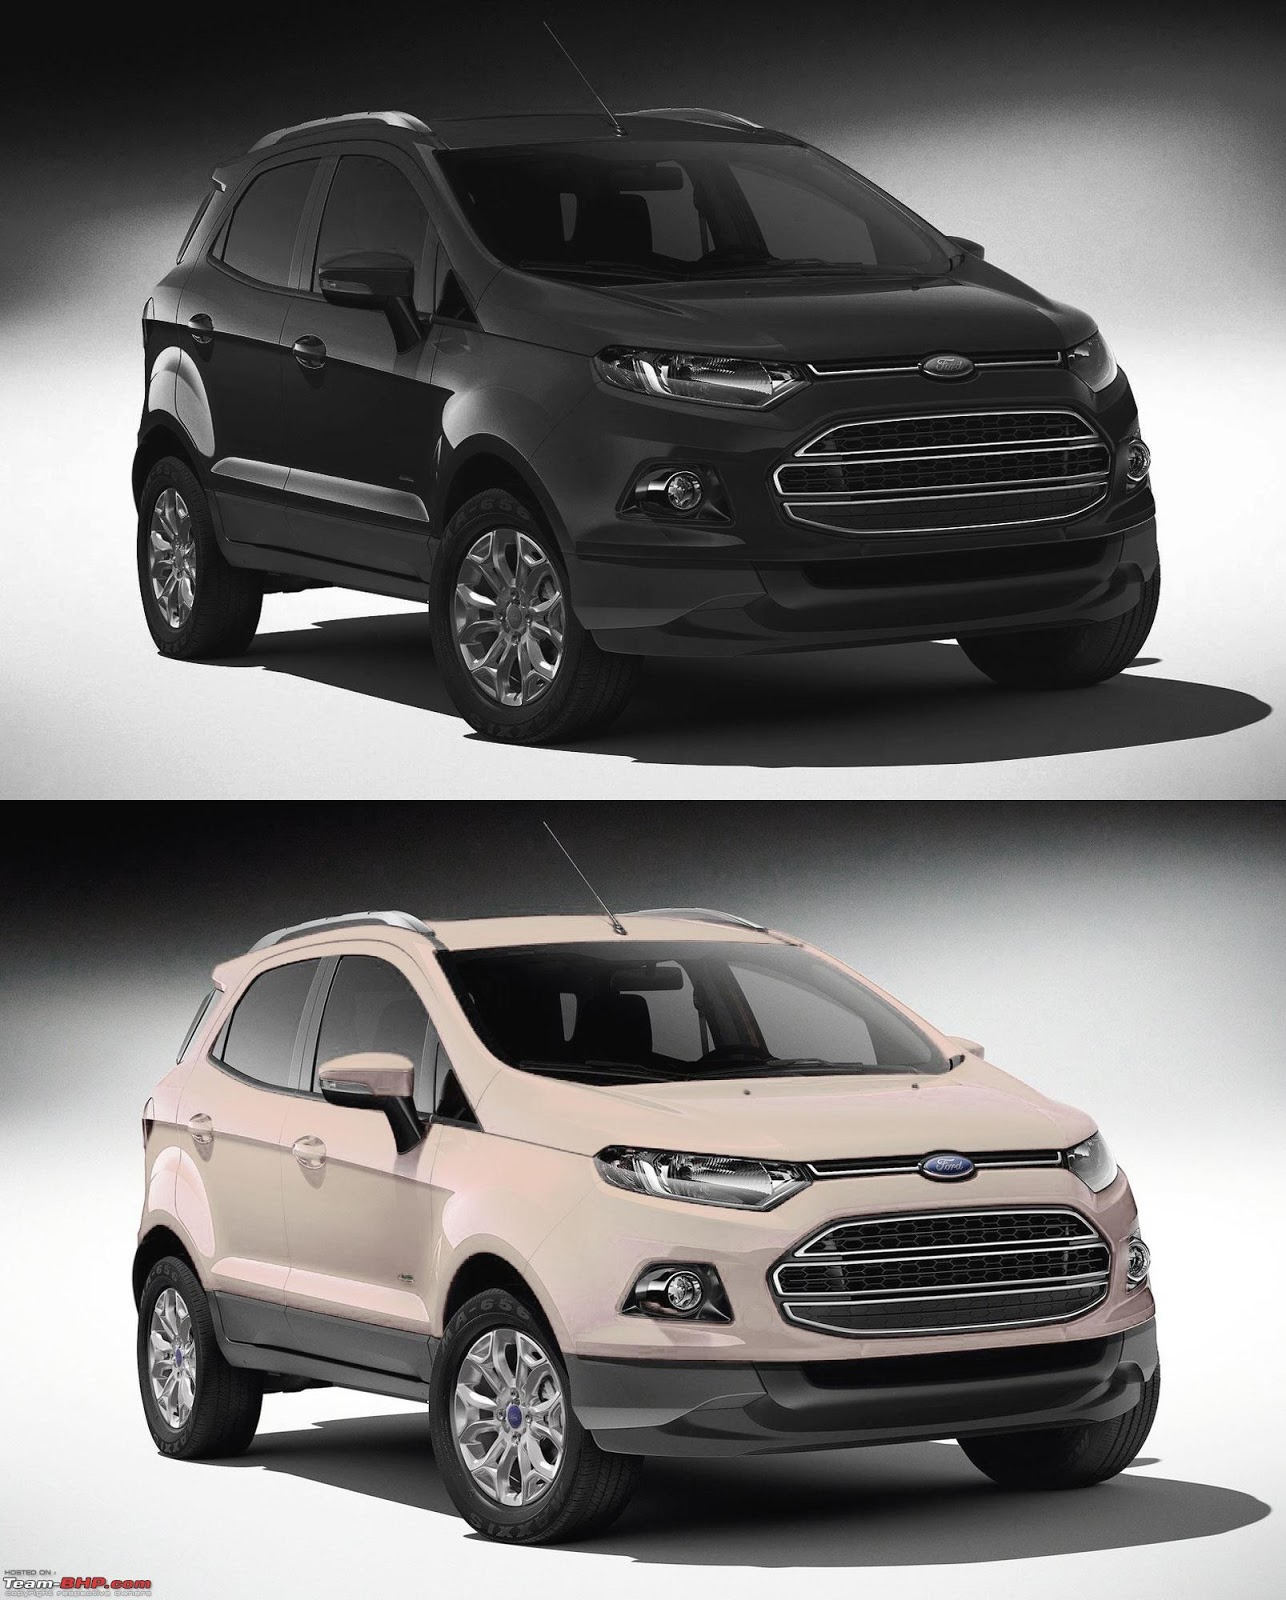 Ford Ecosport Suv Wallpapers Photo Gallery